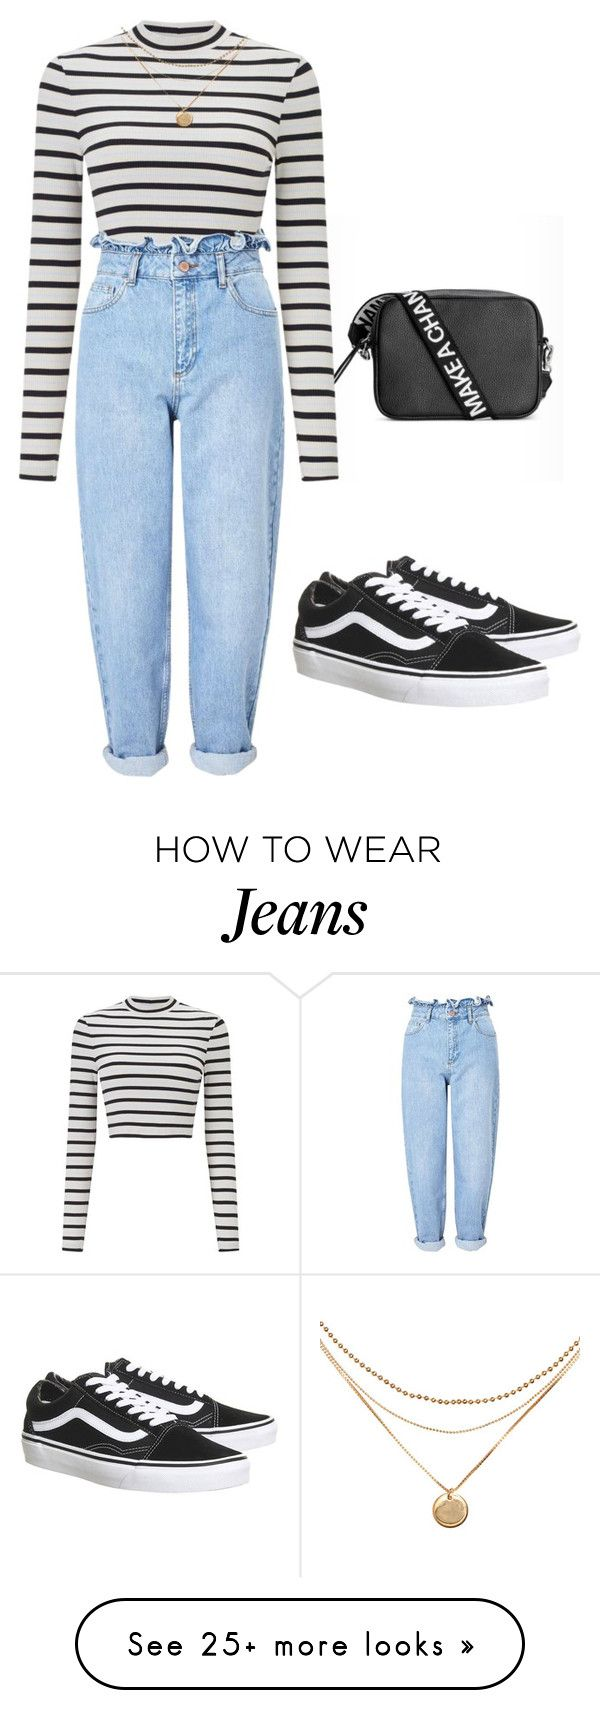 """""""These jeans are amazing!!!"""" by alexxandrajade on Polyvore featuring Miss Selfridge and Vans"""